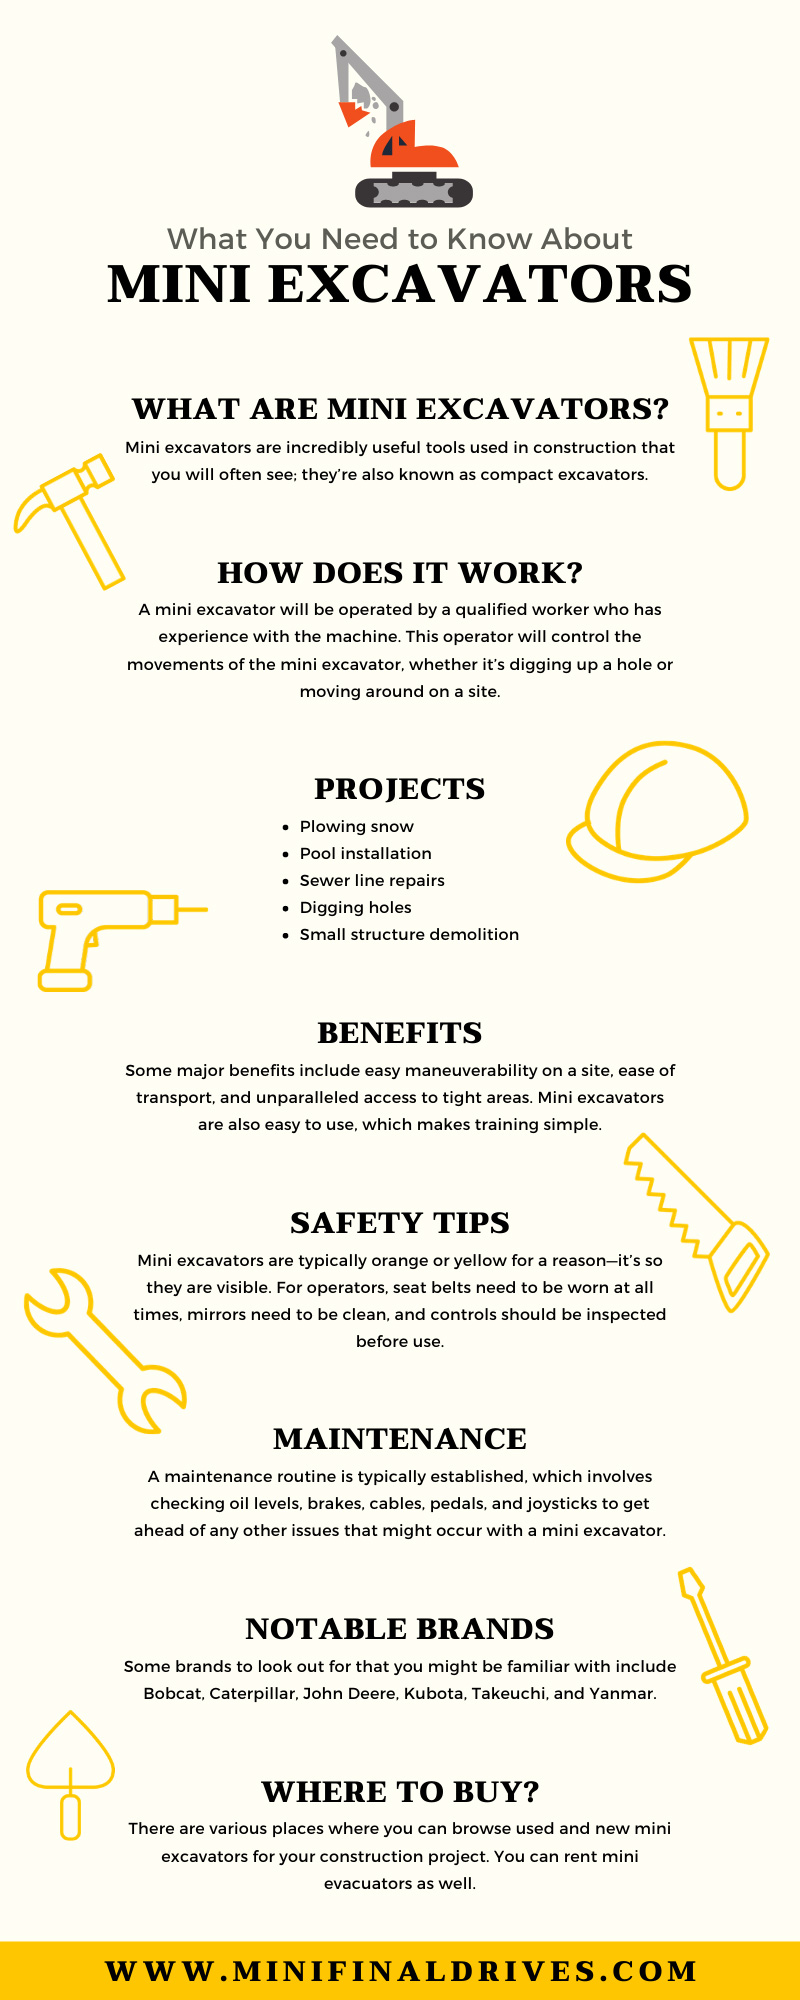 What You Need to Know About Mini Excavators